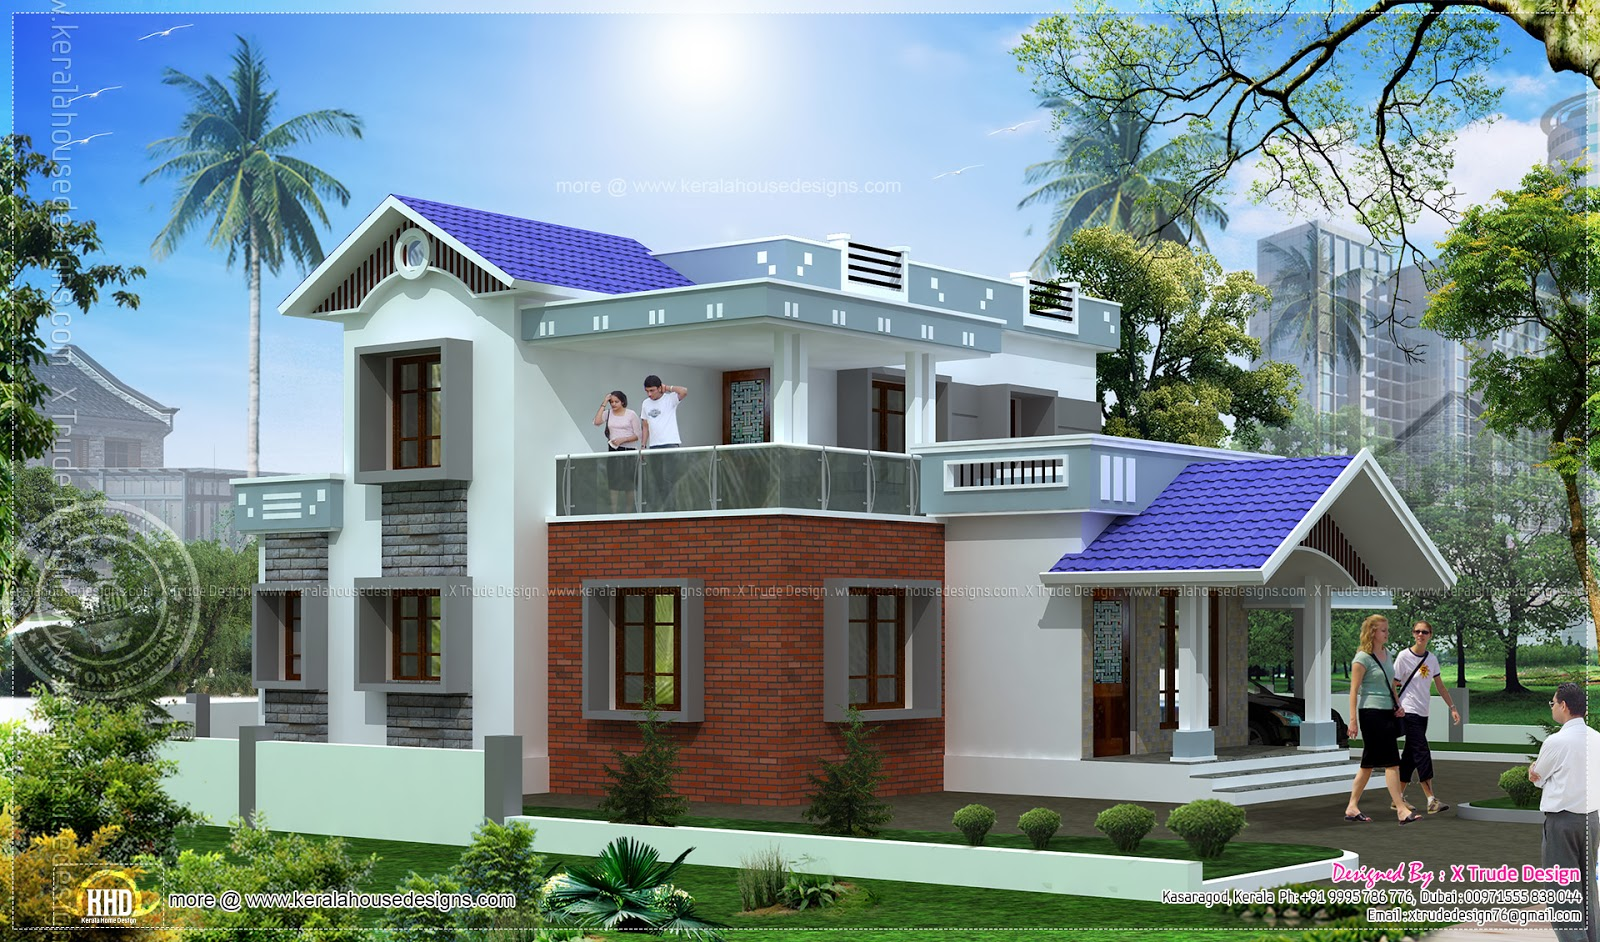 5 bedroom house elevation in 2344 sq feet keralahousedesigns for Car porch design in kerala